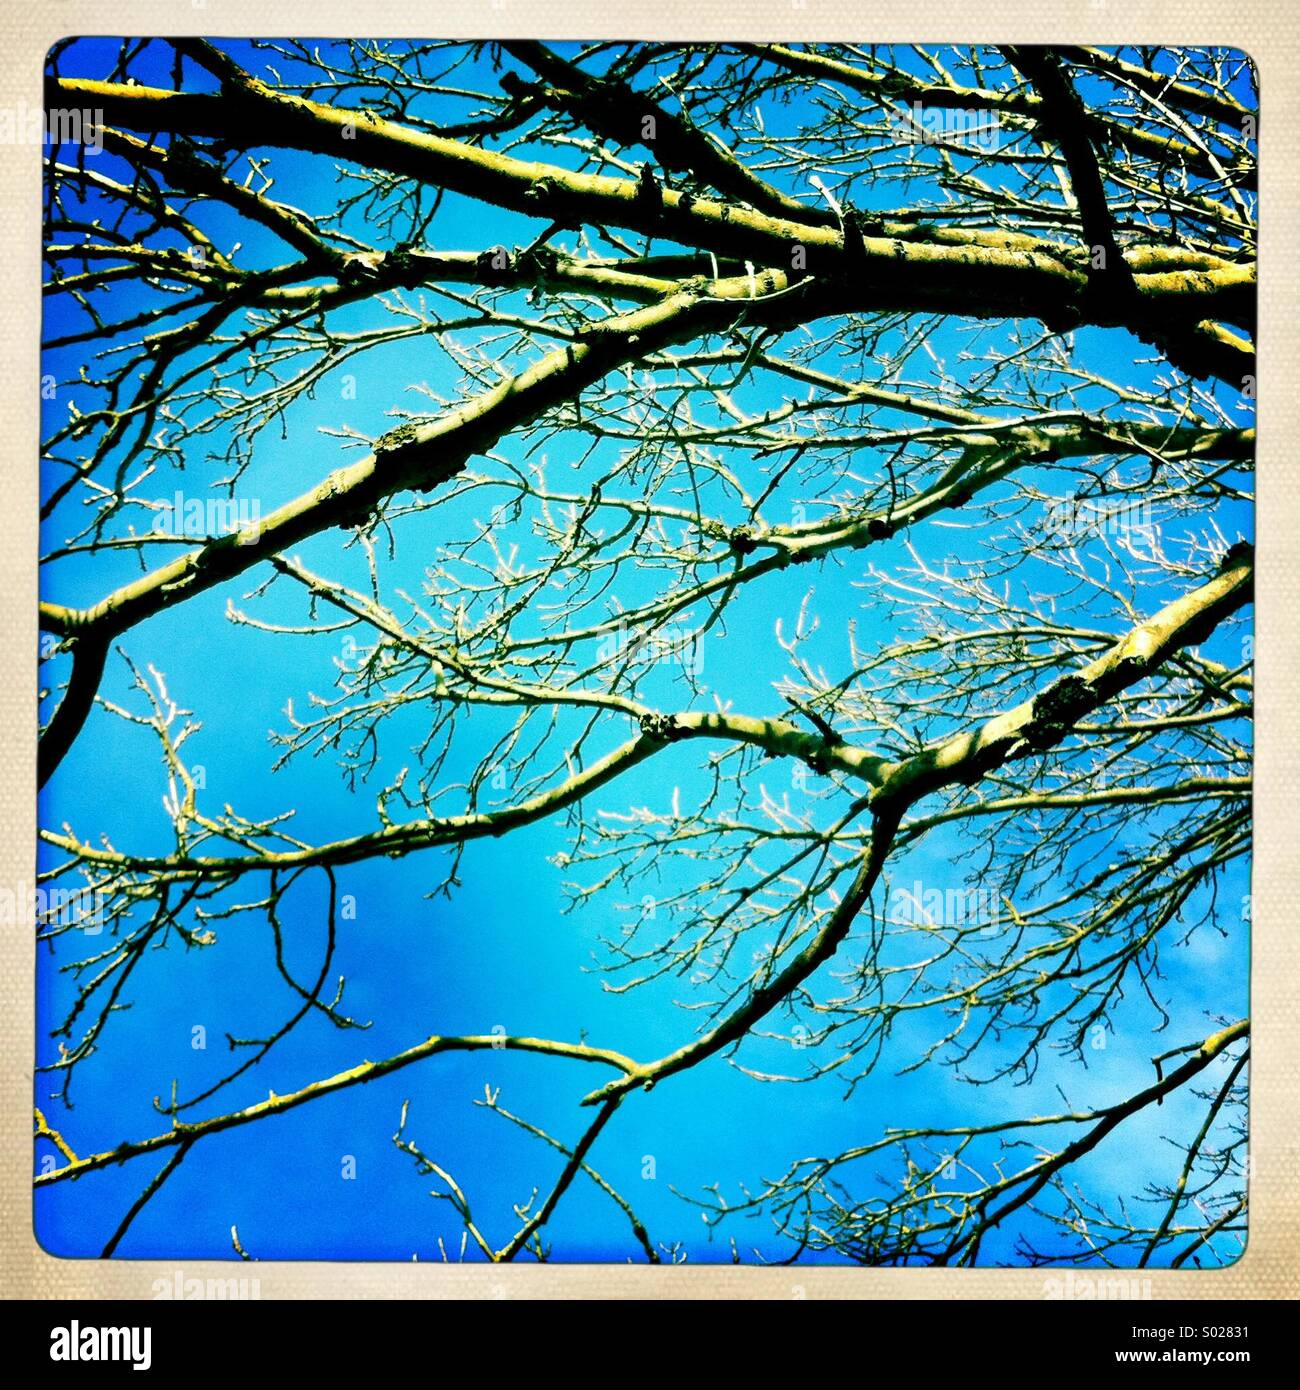 Bare branches against a clear blue sky - Stock Image